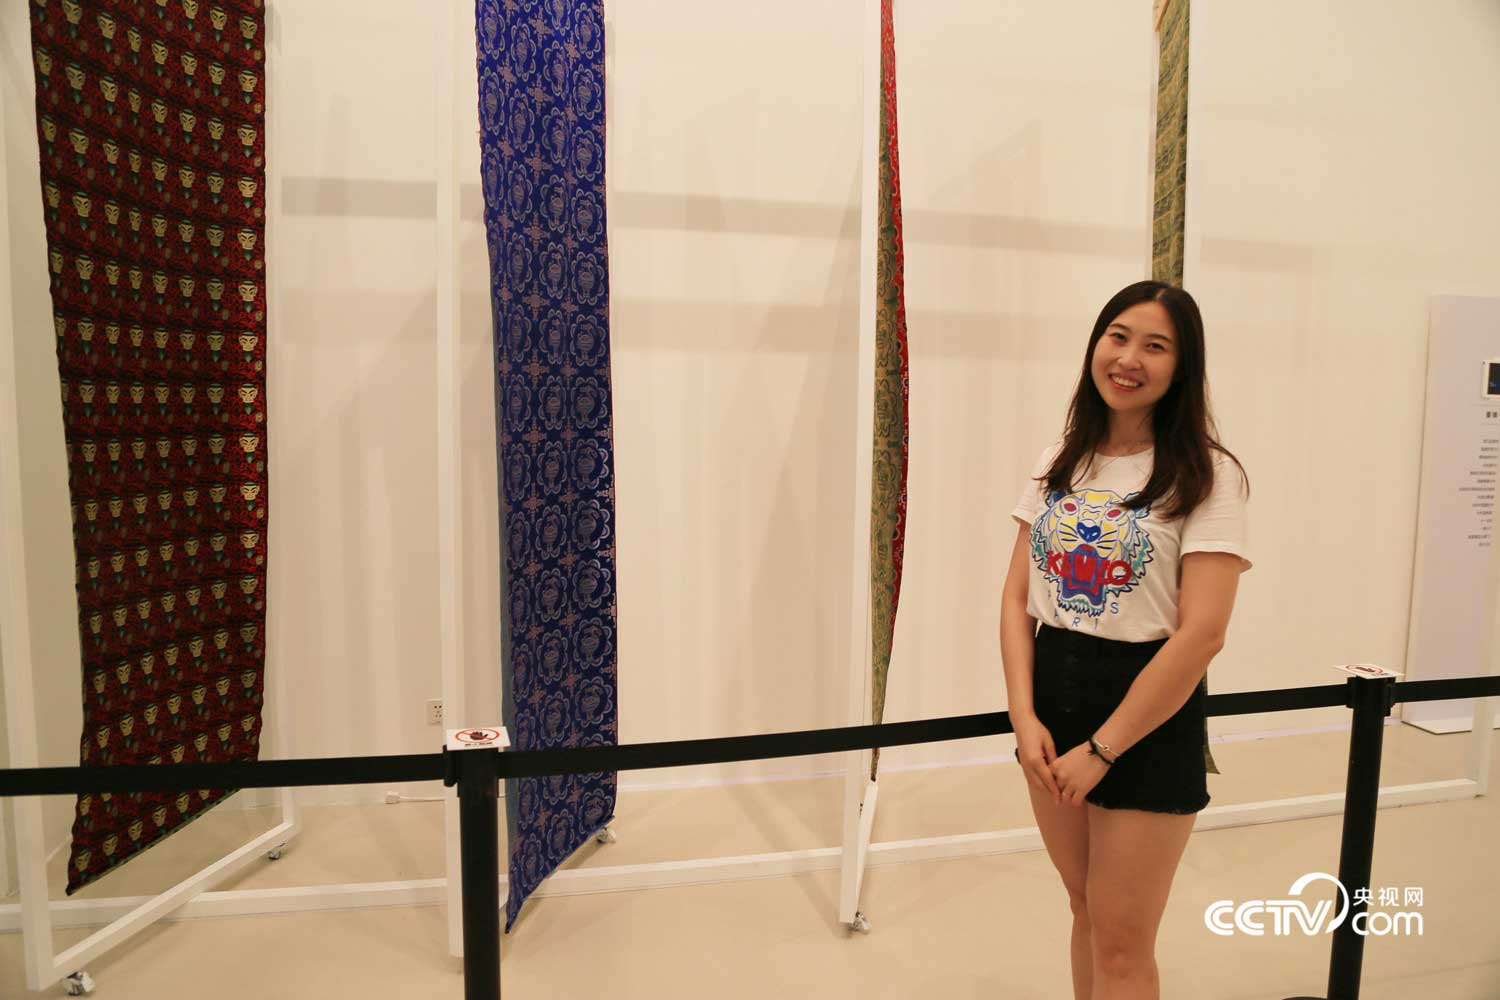 Exhibition visior Ms. Sun poses with Sichuan brocade cloths